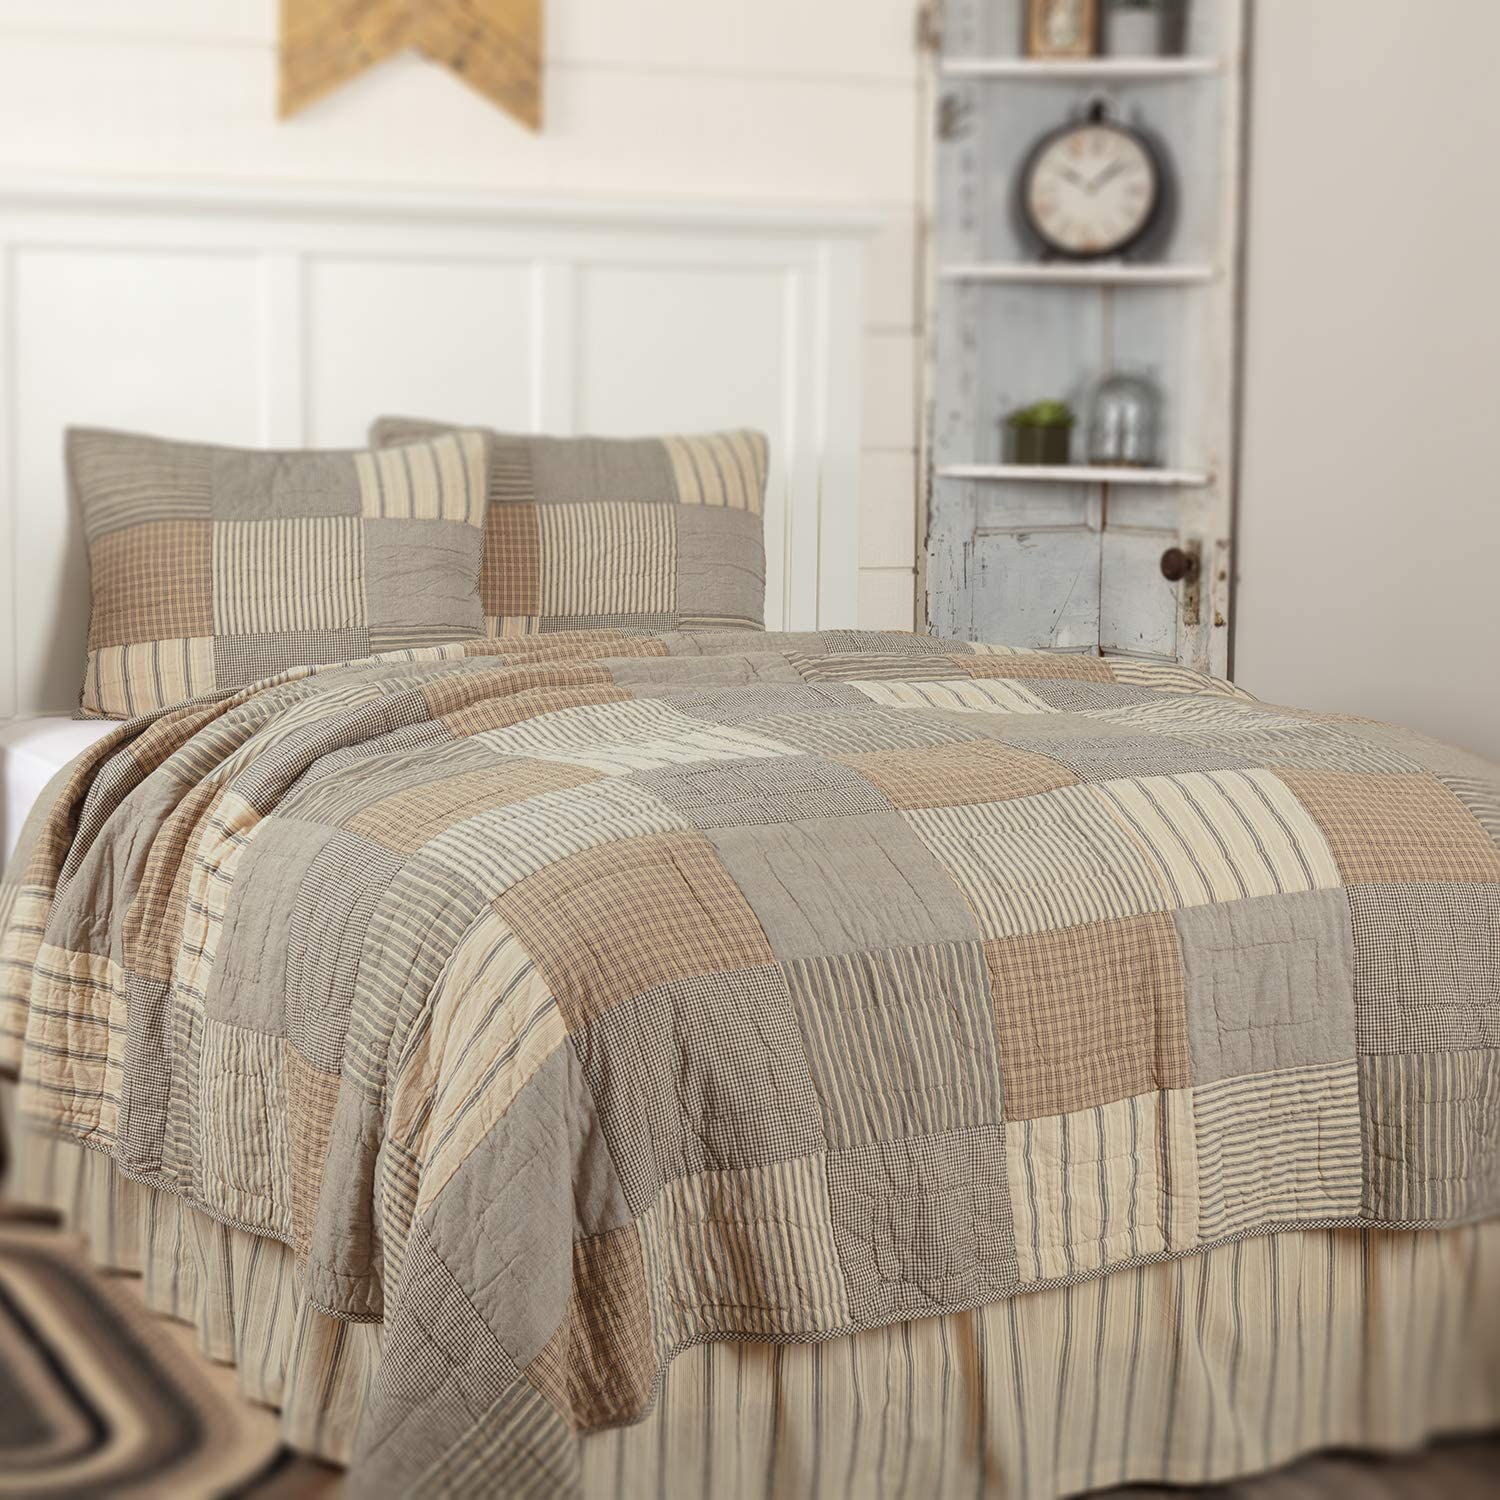 COUNTRY PRIMITIVE FARMHOUSE SAWYER MILL RED STRIPE QUILT COLLECTION VHC BRANDS